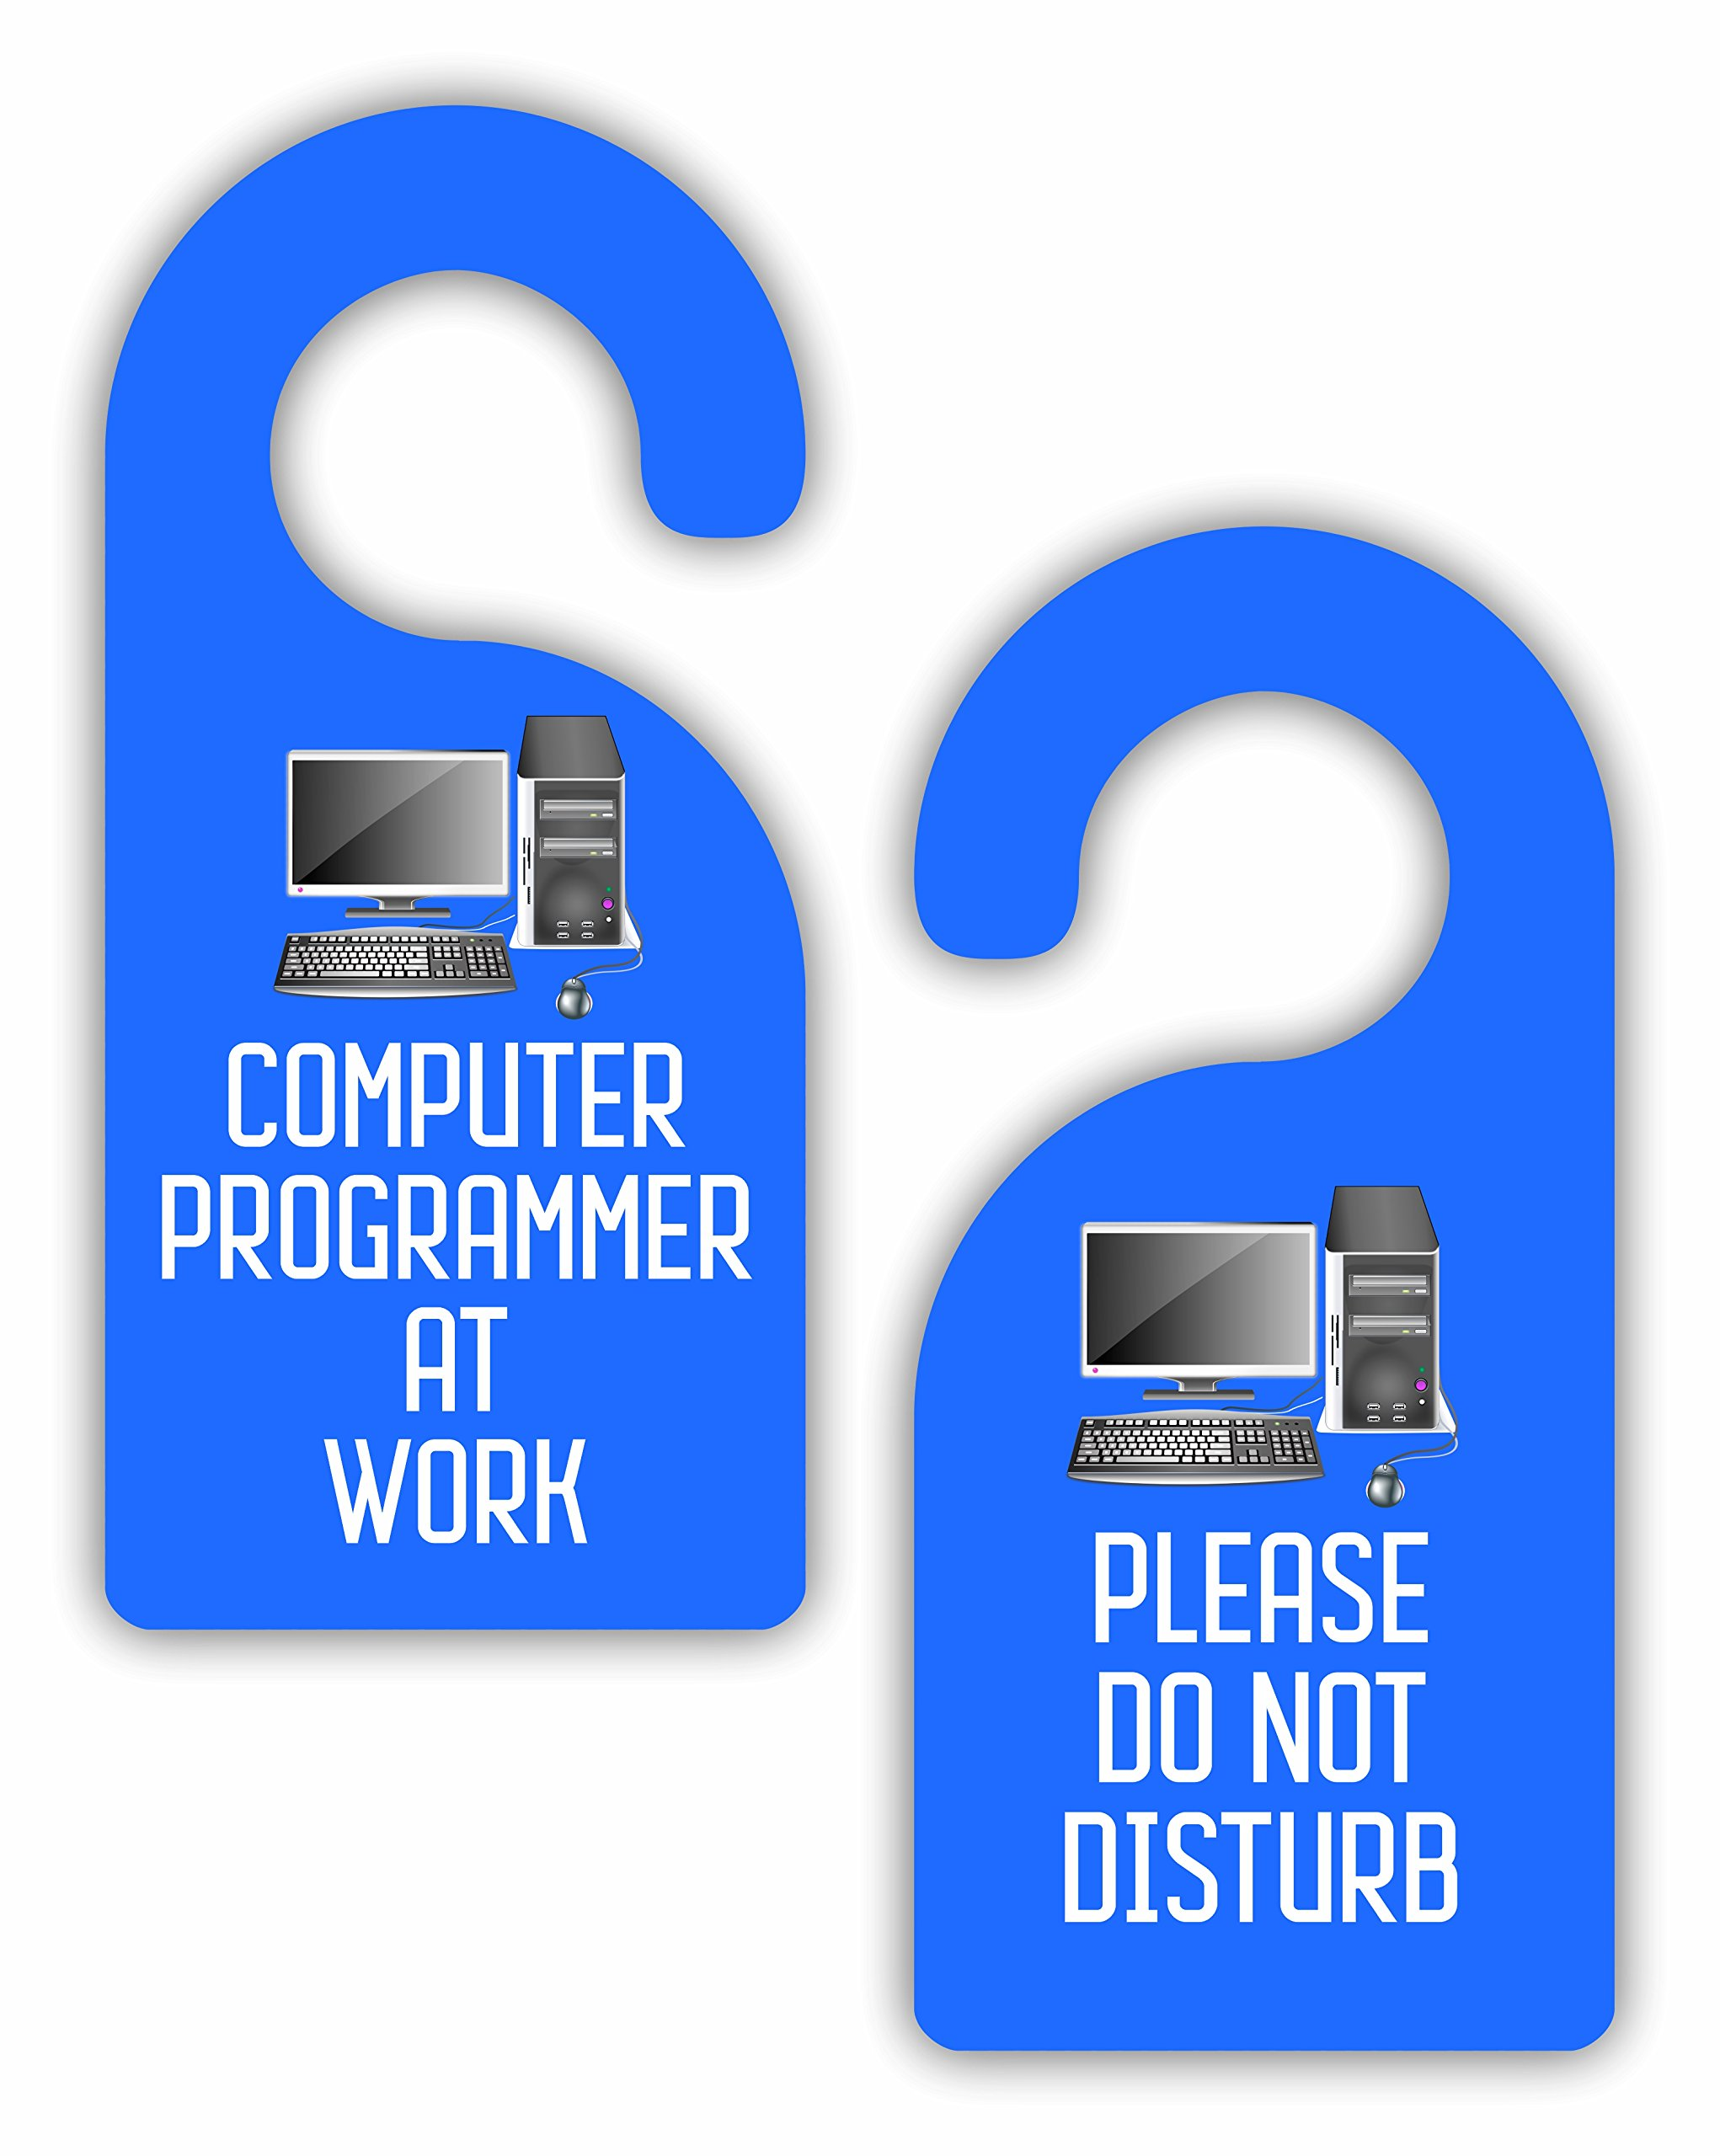 Computer Programmer at Work/Please Do Not Disturb - Double-Sided Hard Plastic Glossy Door Hanger